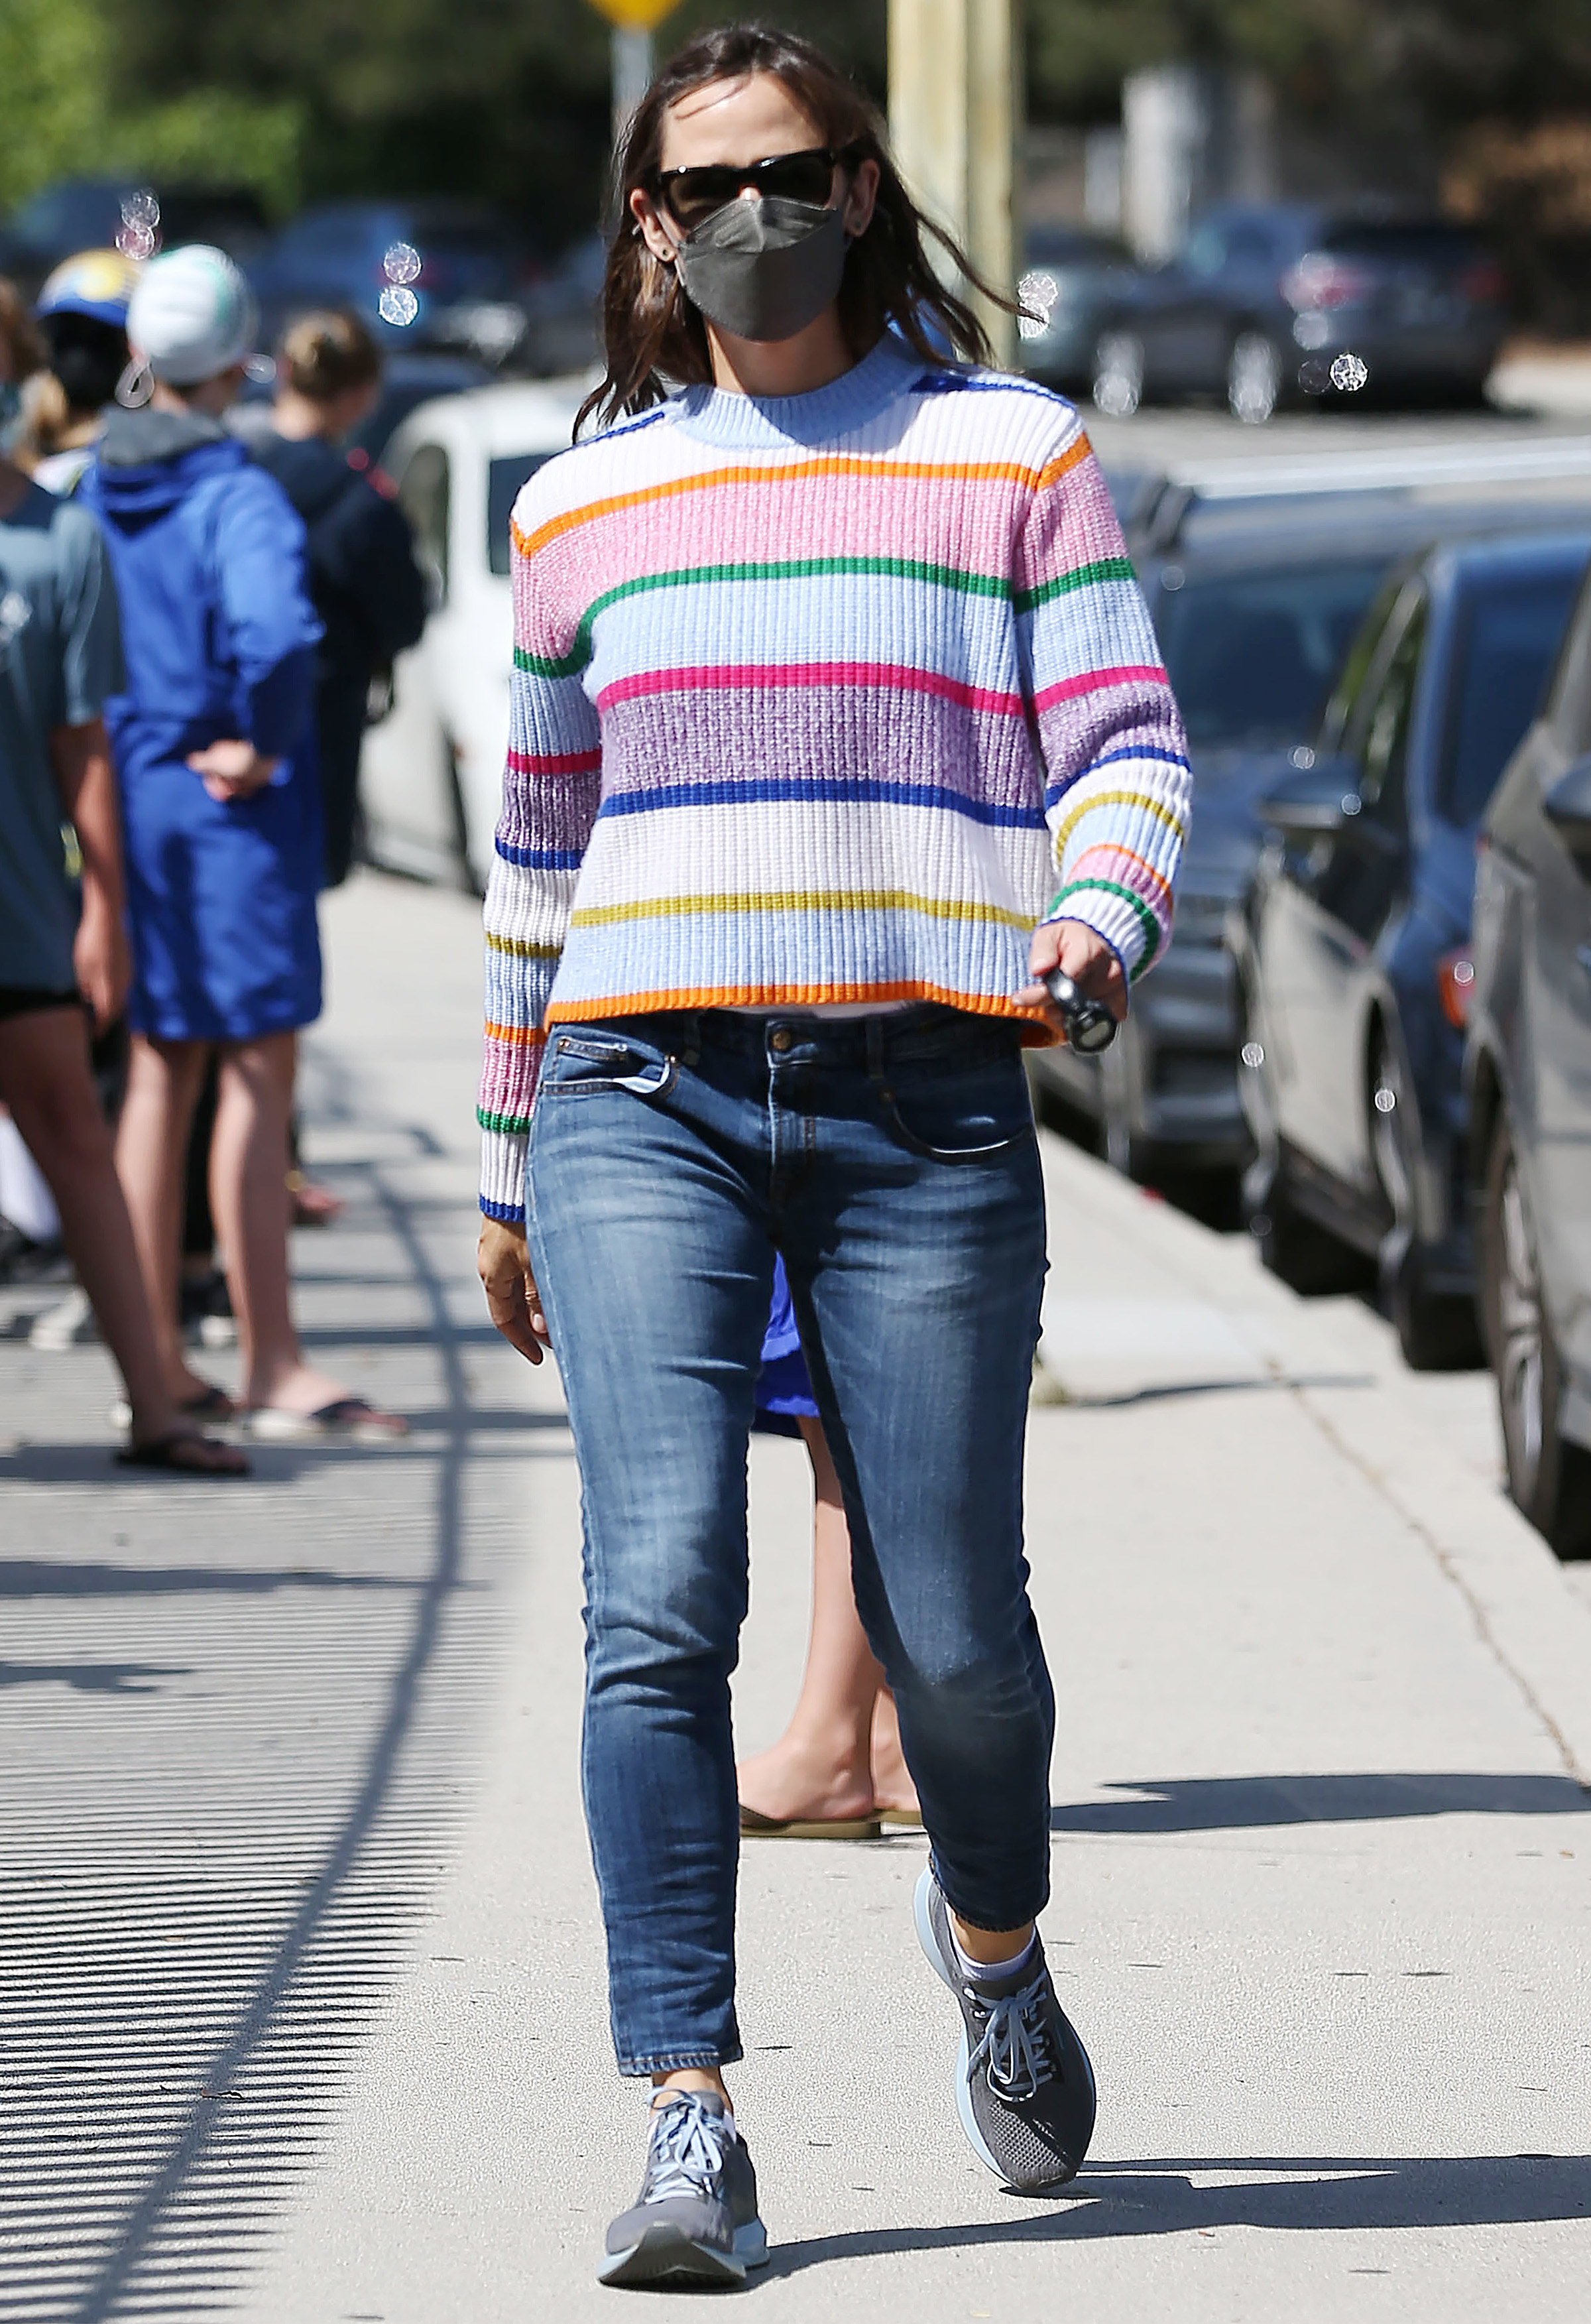 Jennifer wears a striped mock turtleneck sweater with jeans and sneakers.